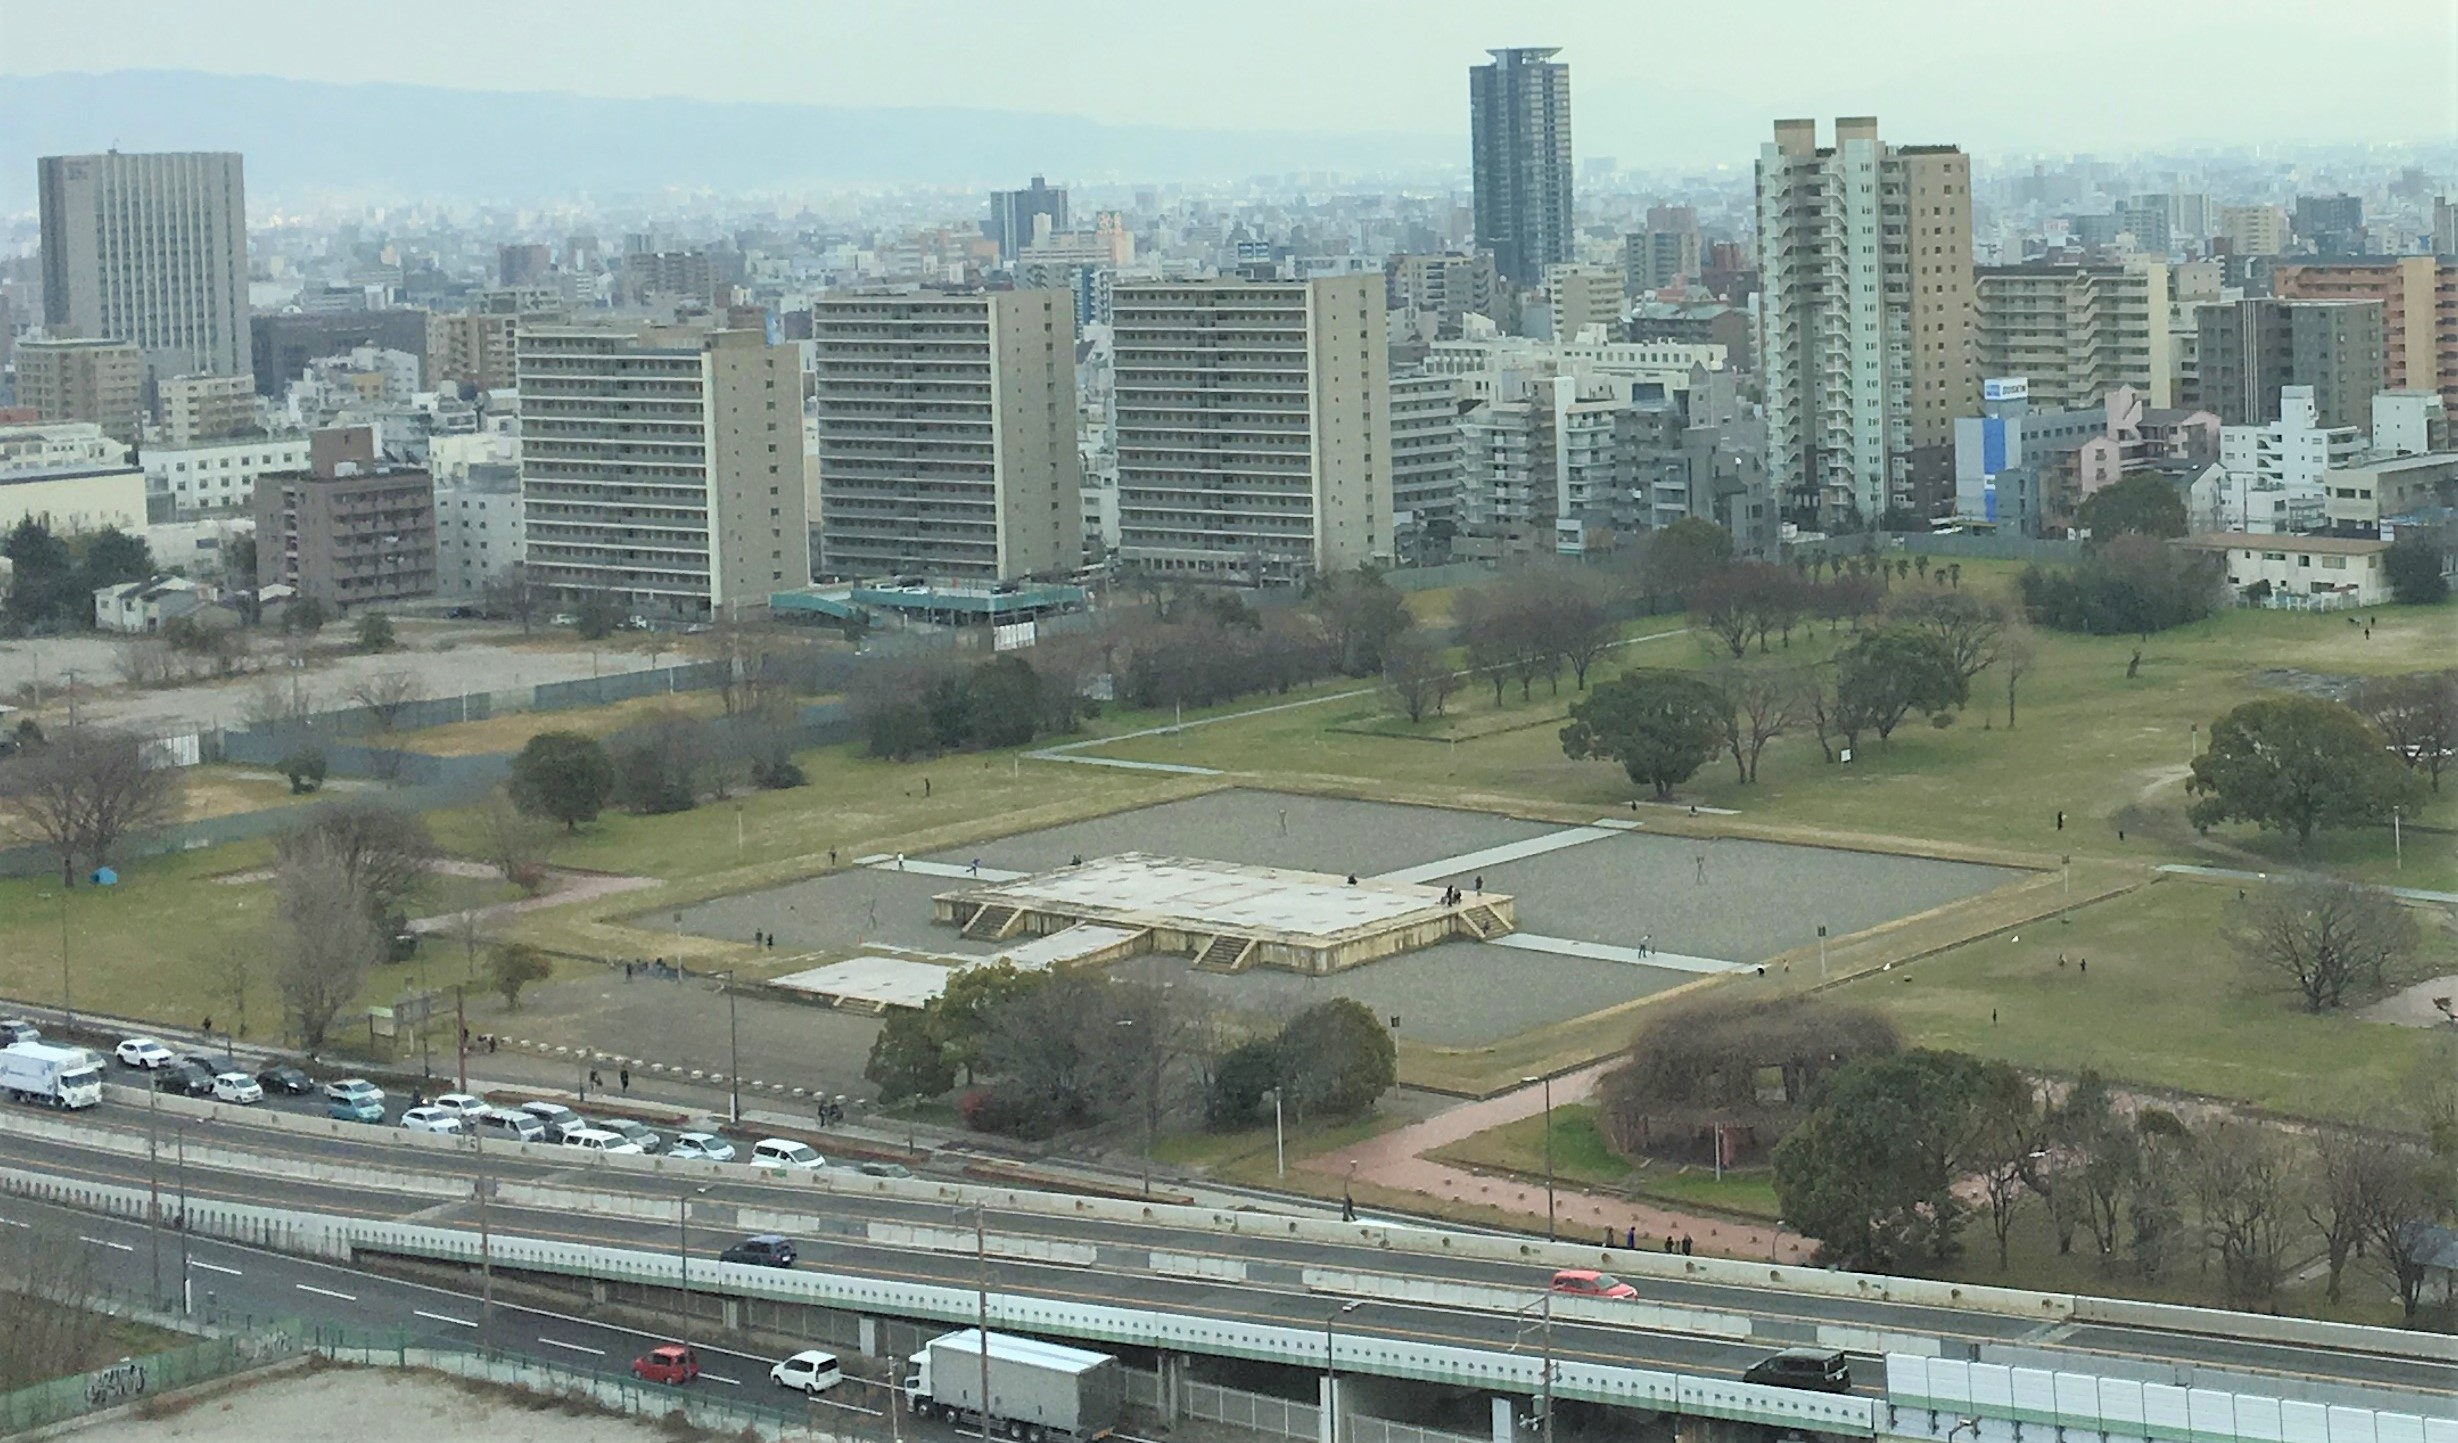 birds eye view of naniwanomiya park in Osaka